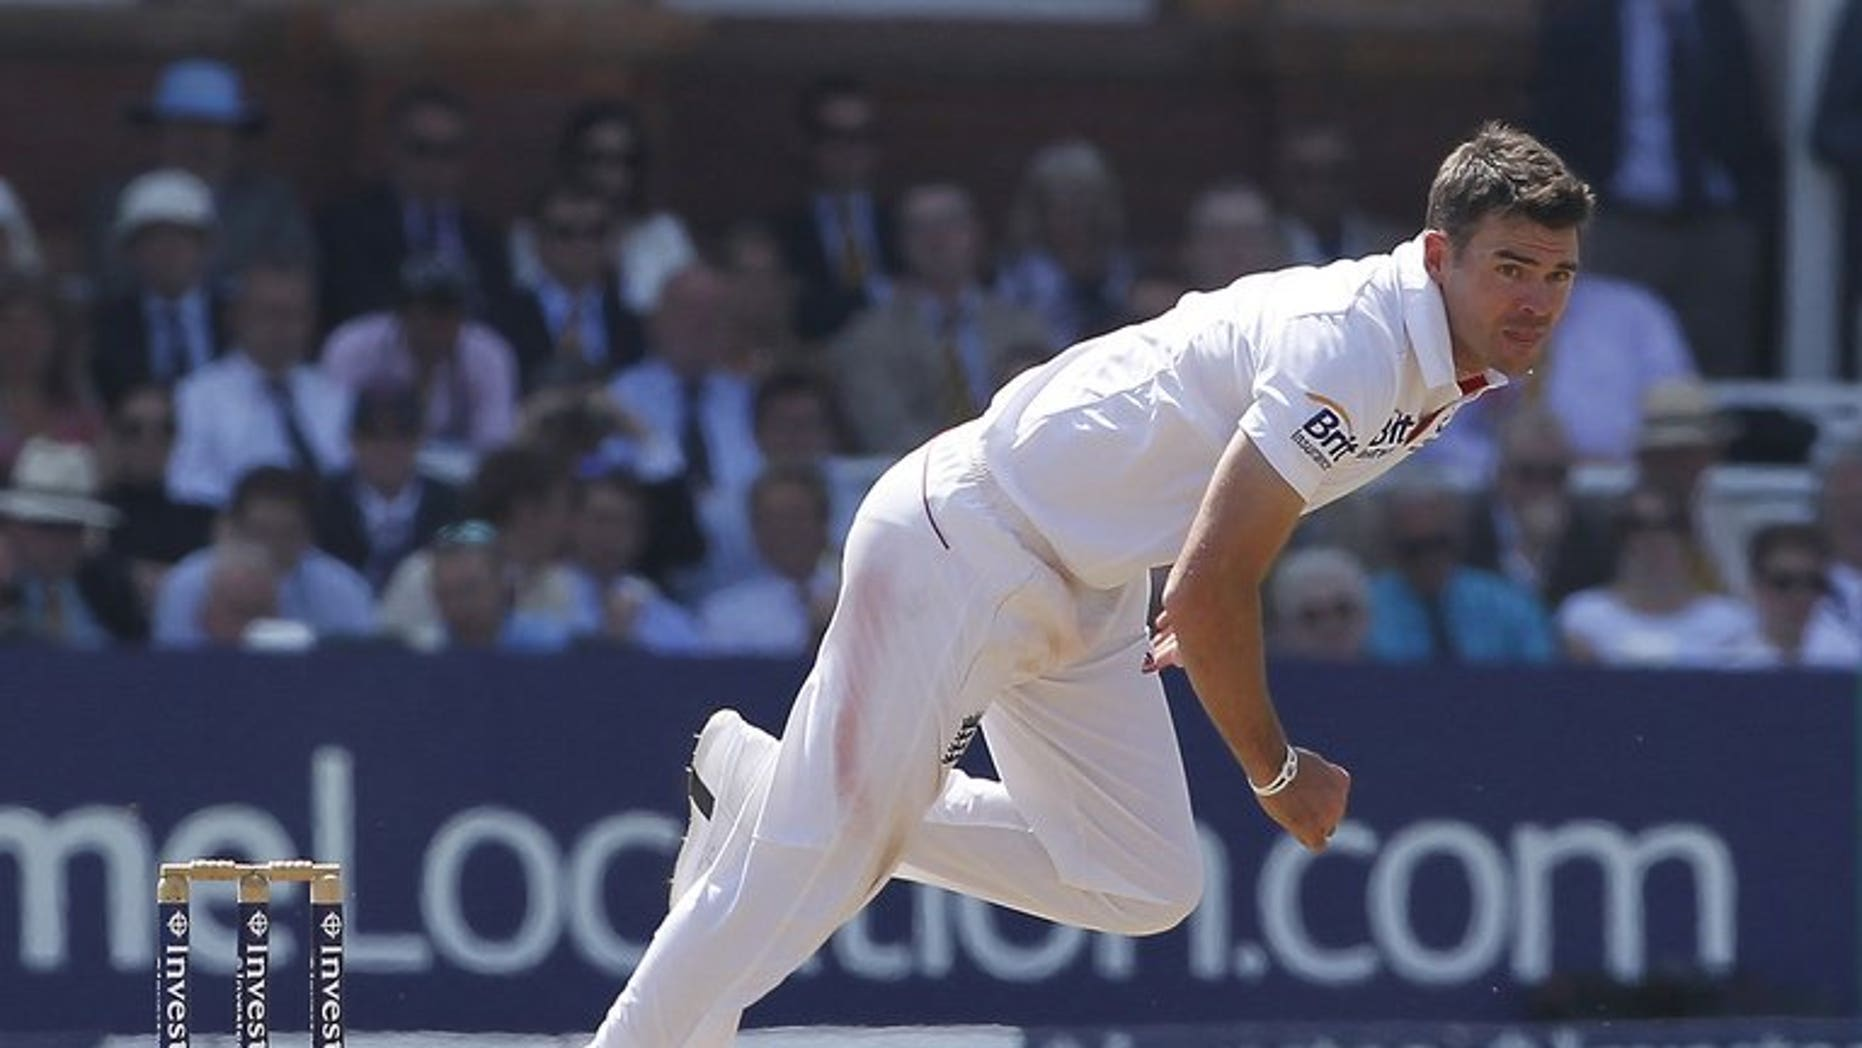 England's James Anderson bowls at Lord's cricket ground in north London, on July 21, 2013. Anderson said Tuesday the team were optimistic Kevin Pietersen would be fit for next week's third Ashes Test at Old Trafford.